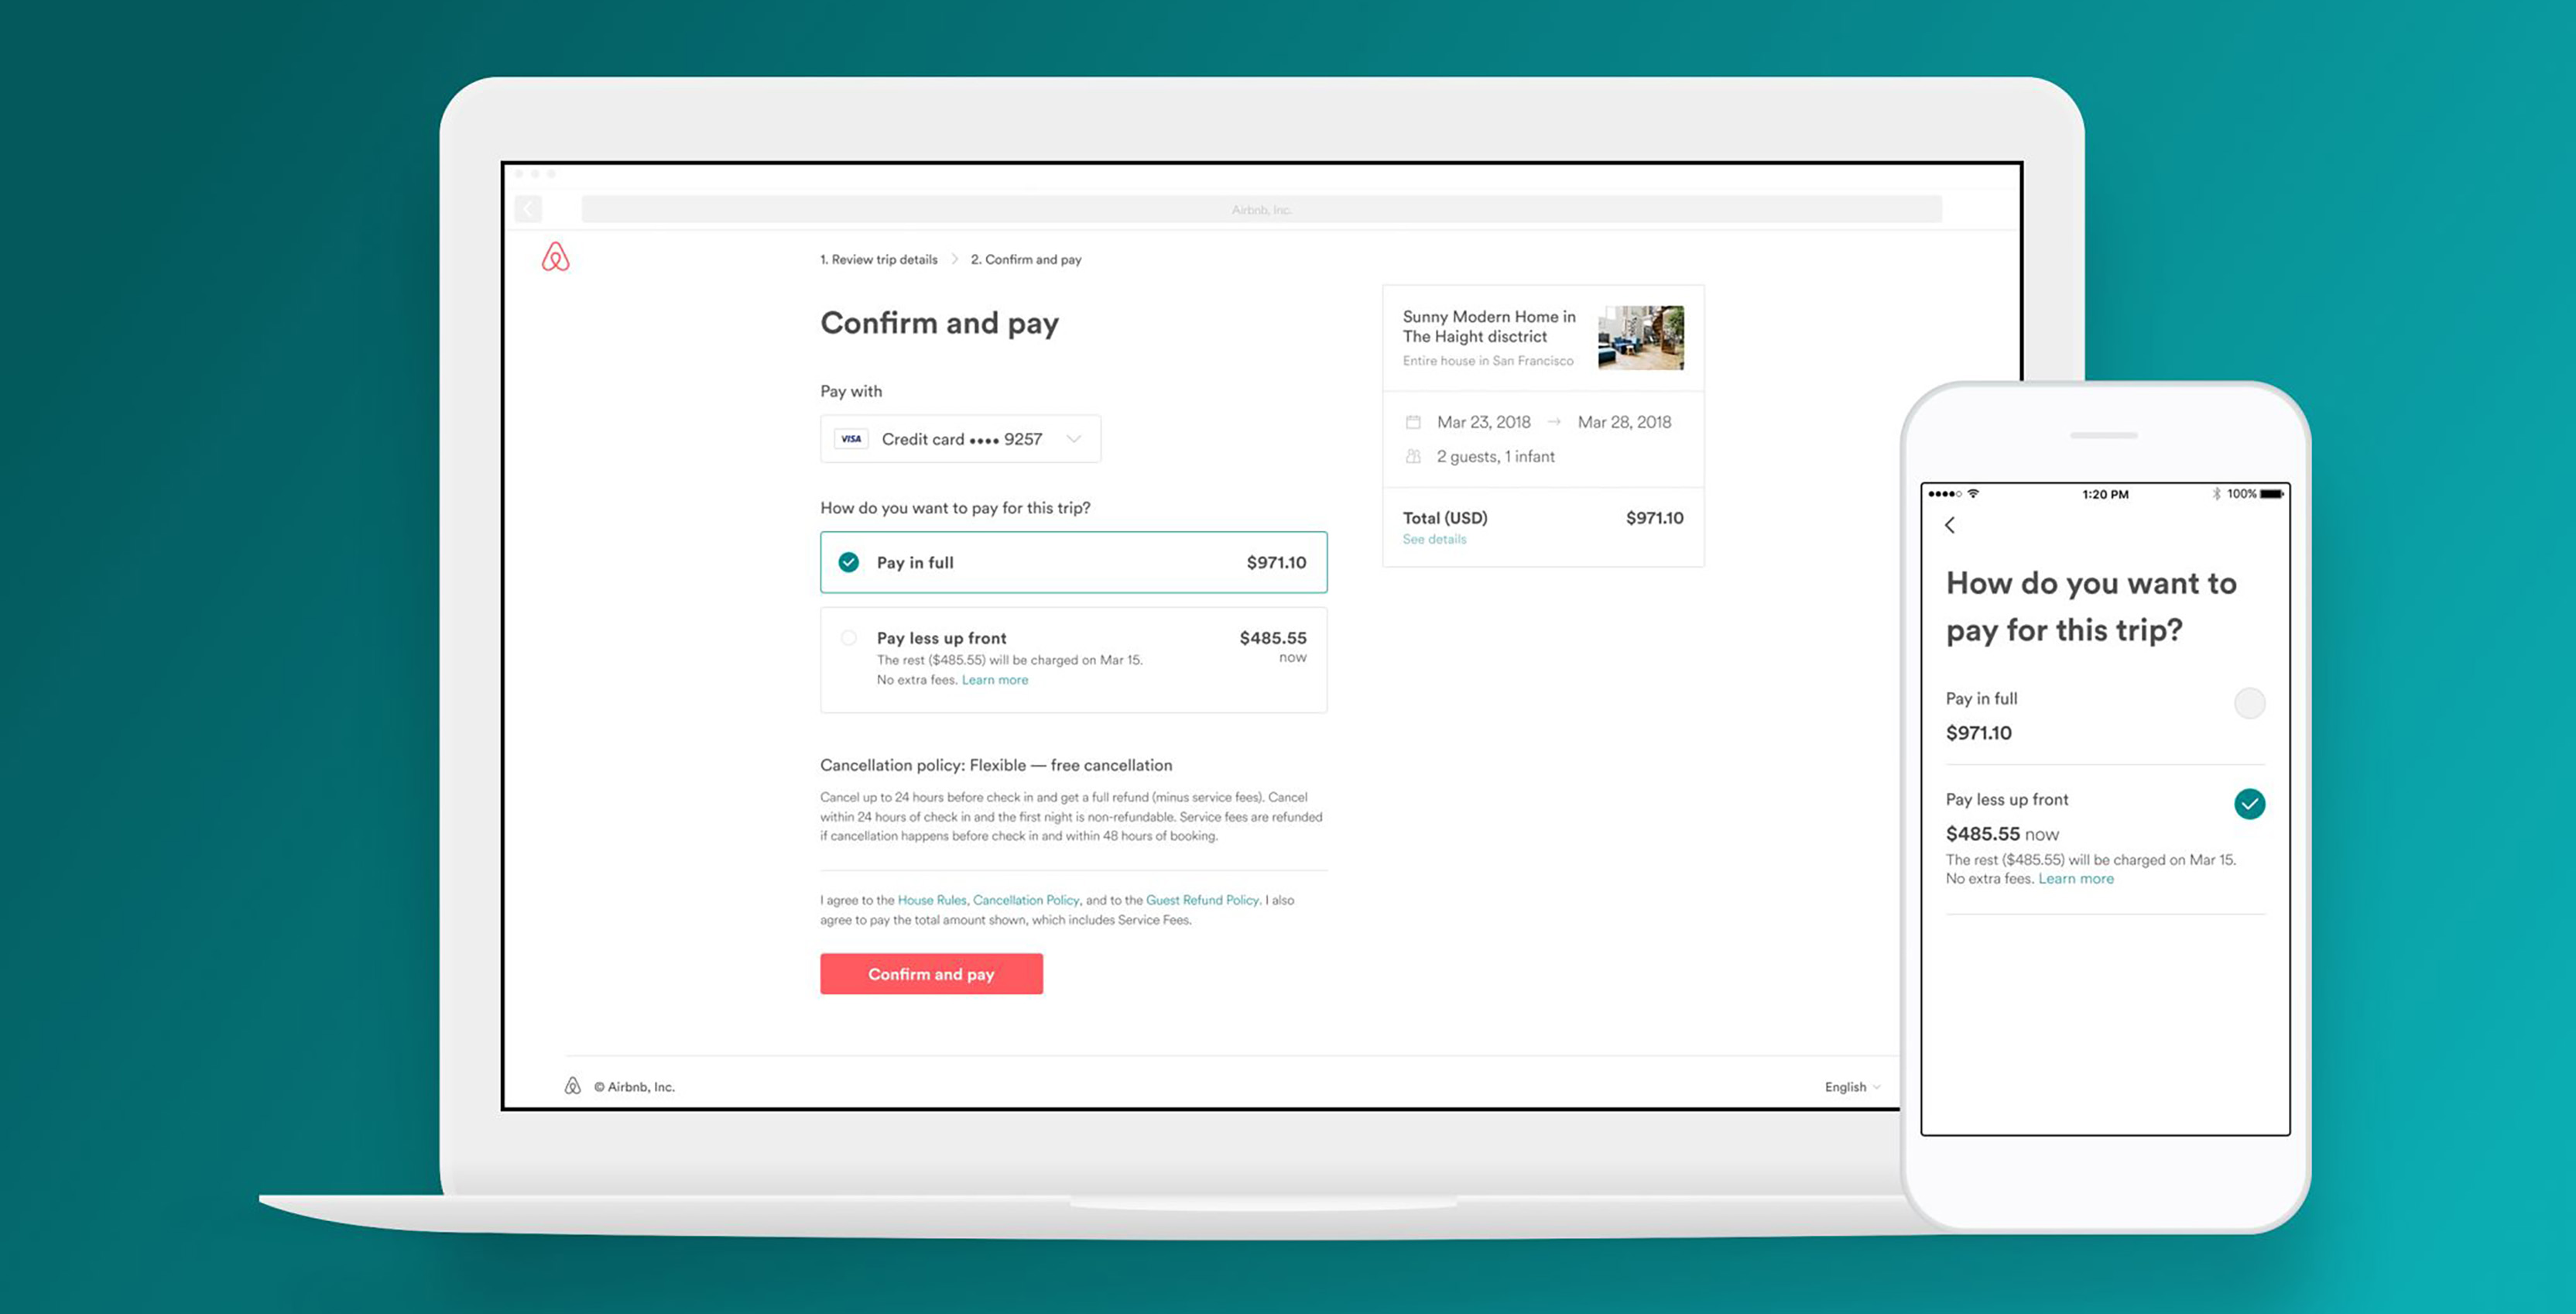 Air bnb payless up front